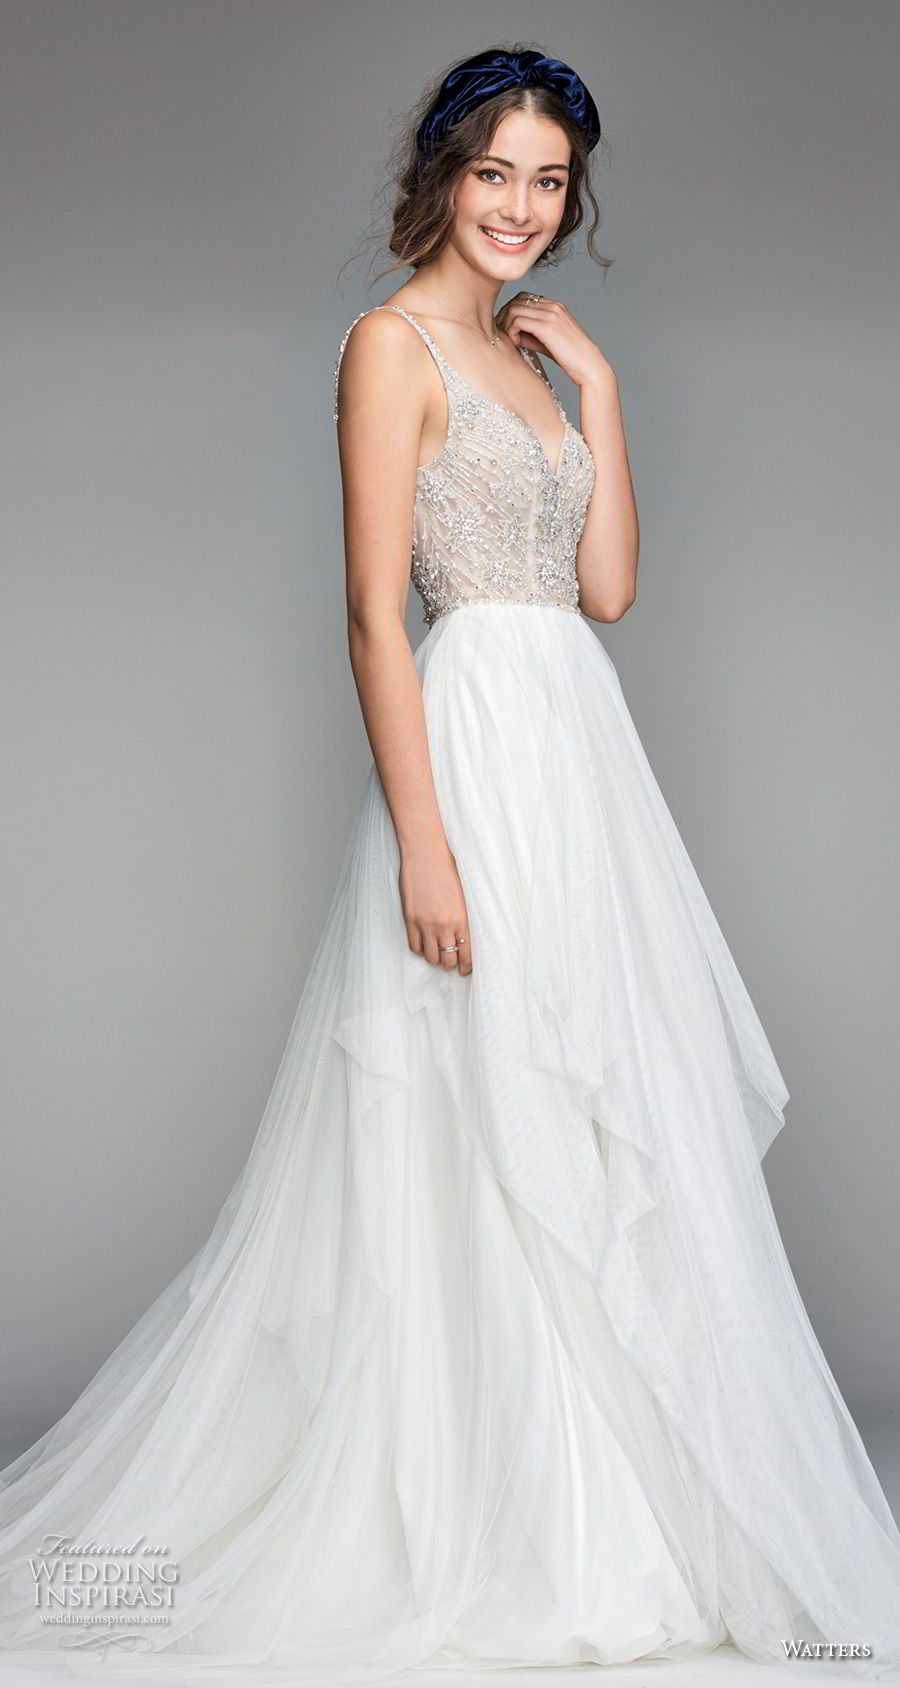 willow by watters spring 2018 thin straps sweetheart neckline heavily embellished bodice glamorous romantic a line wedding dress v back sweep train (8) mv